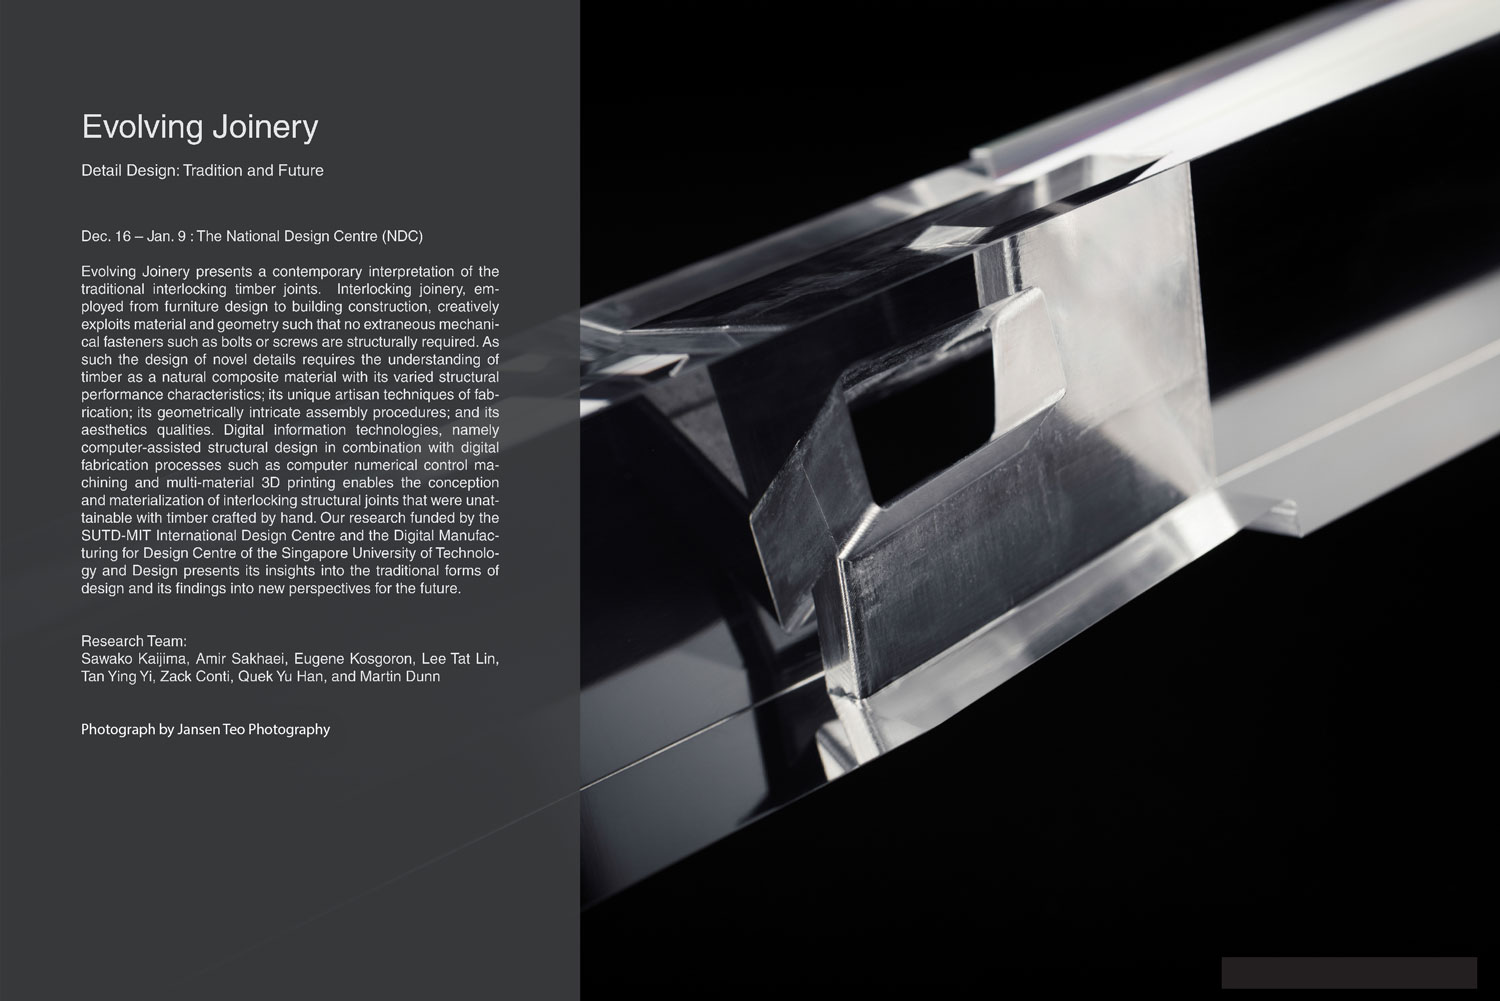 Evolving-Joinery-Invite-Jansen-Teo-Photography.jpg